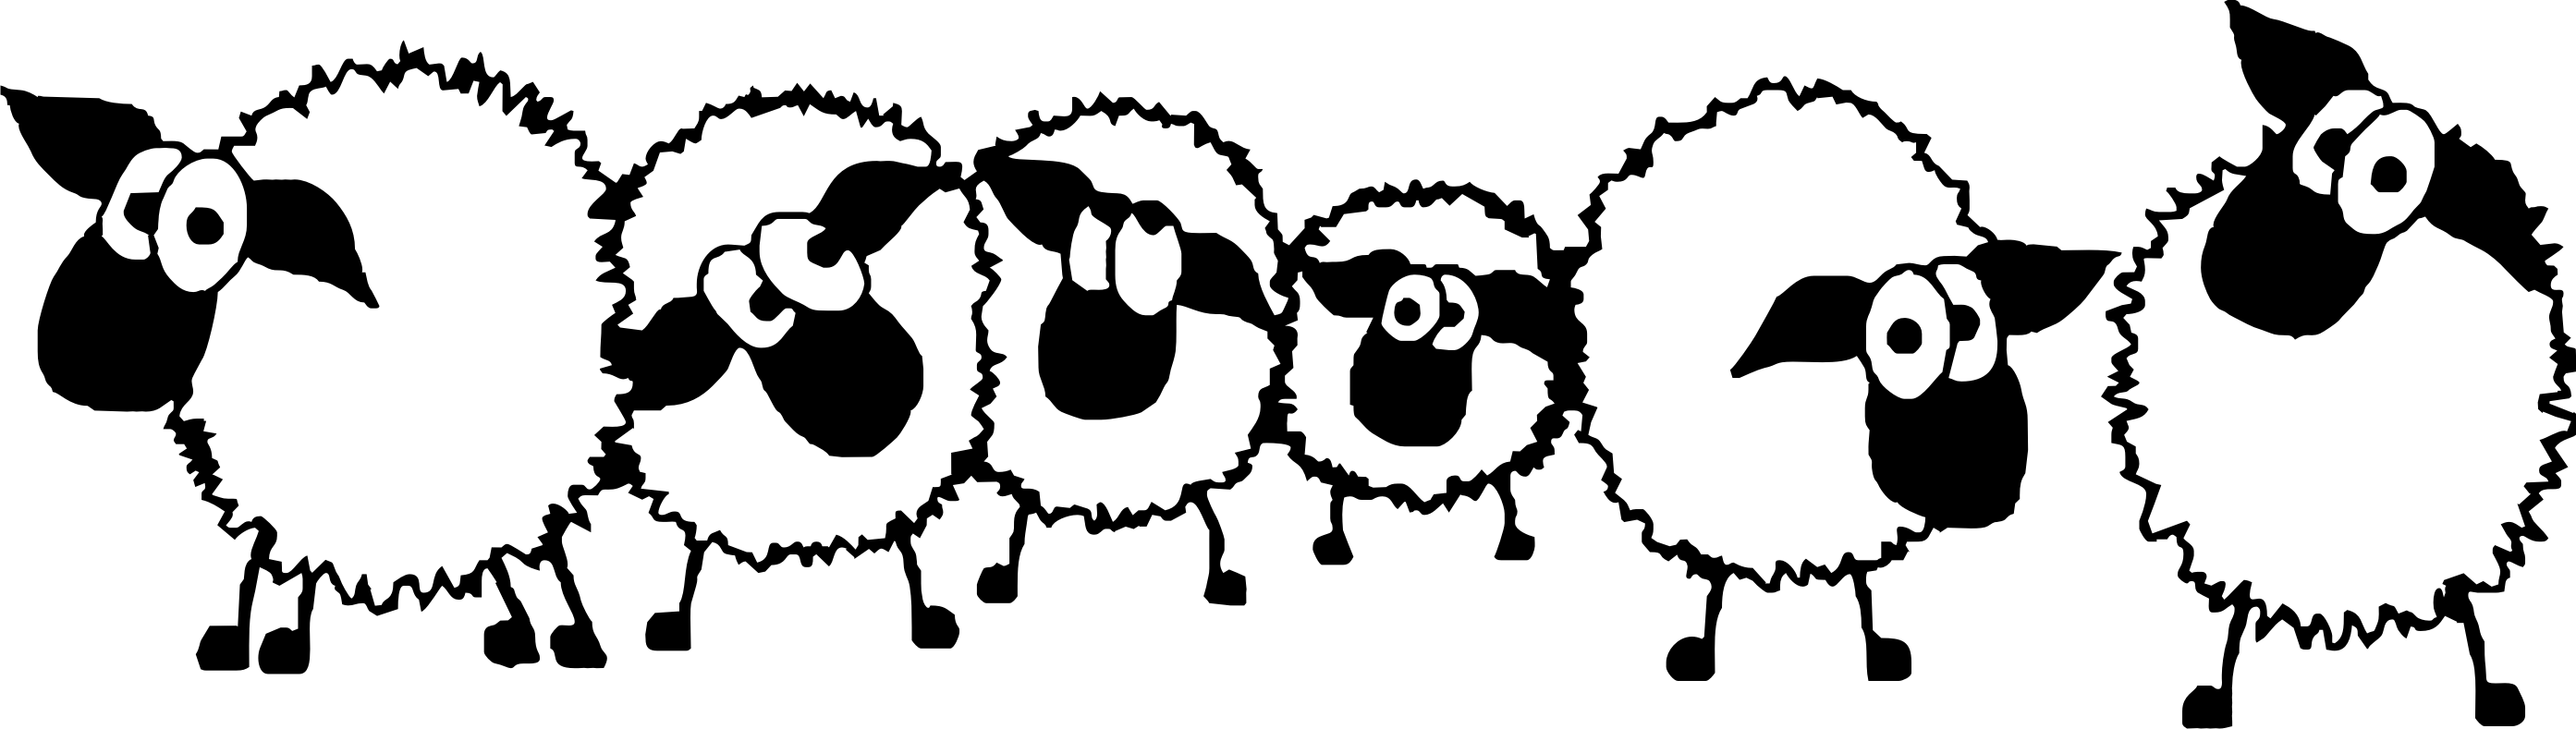 Free Shy Sheep Cliparts, Download Free Clip Art, Free Clip.